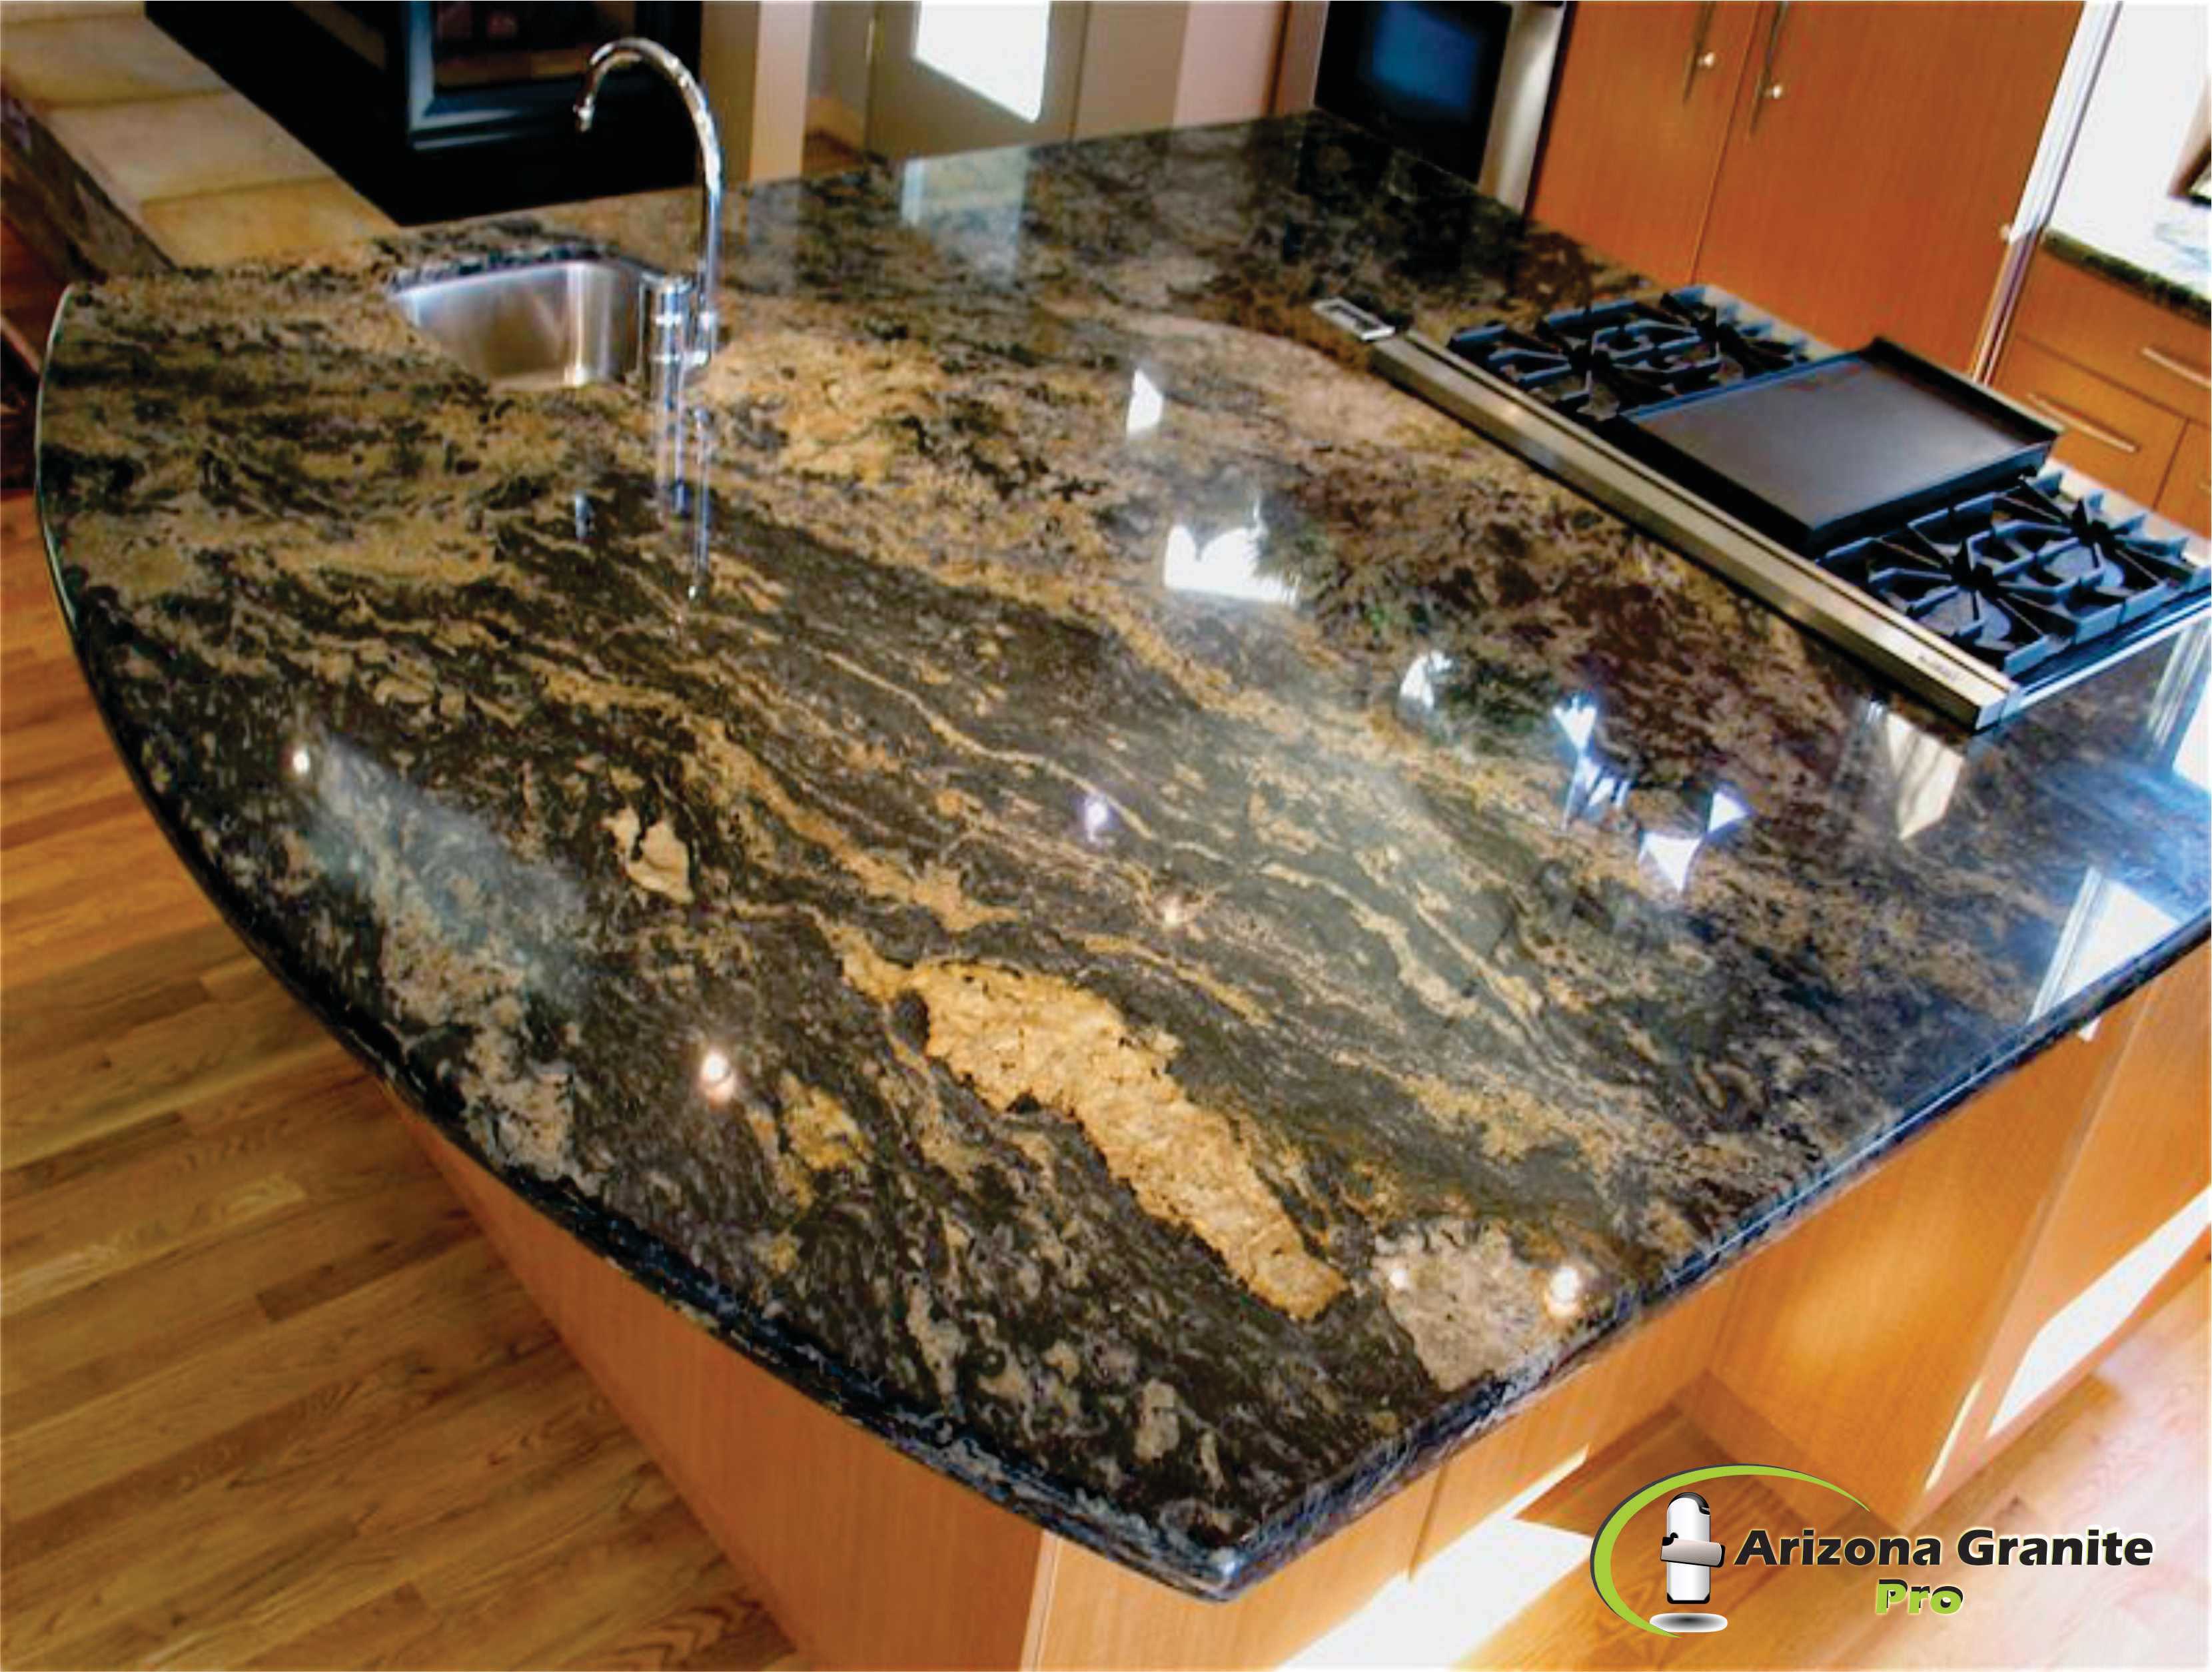 Granite-Kitchen- Arizona Granite Pro 2.